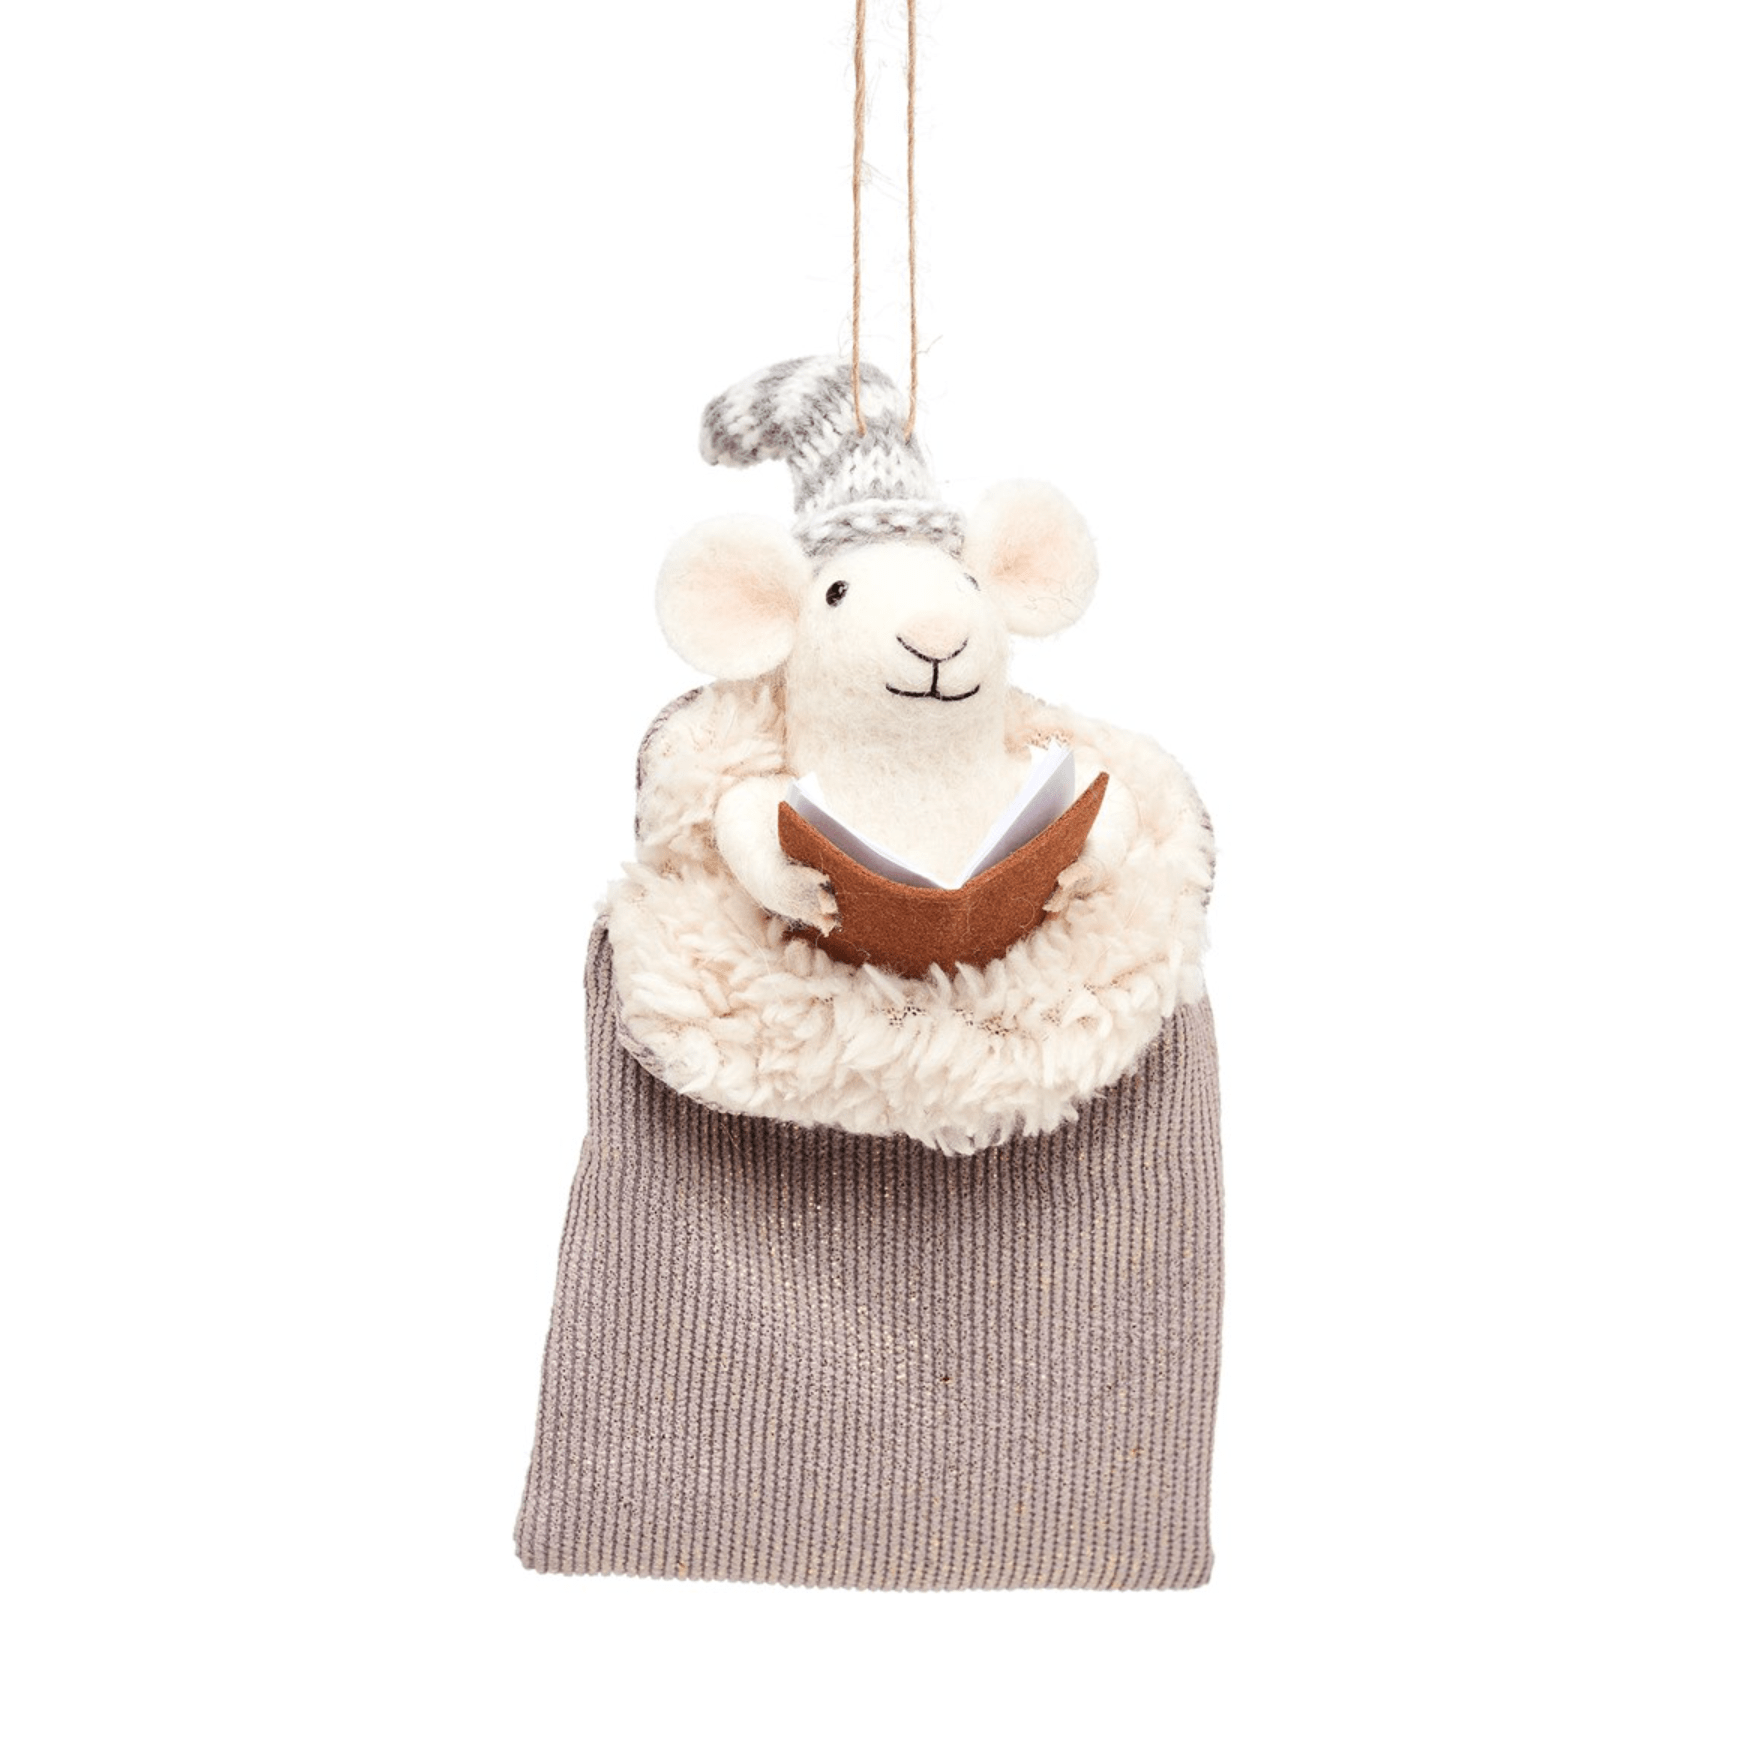 Mouse In Sleeping Bag Felt Decoration By Sass & Belle